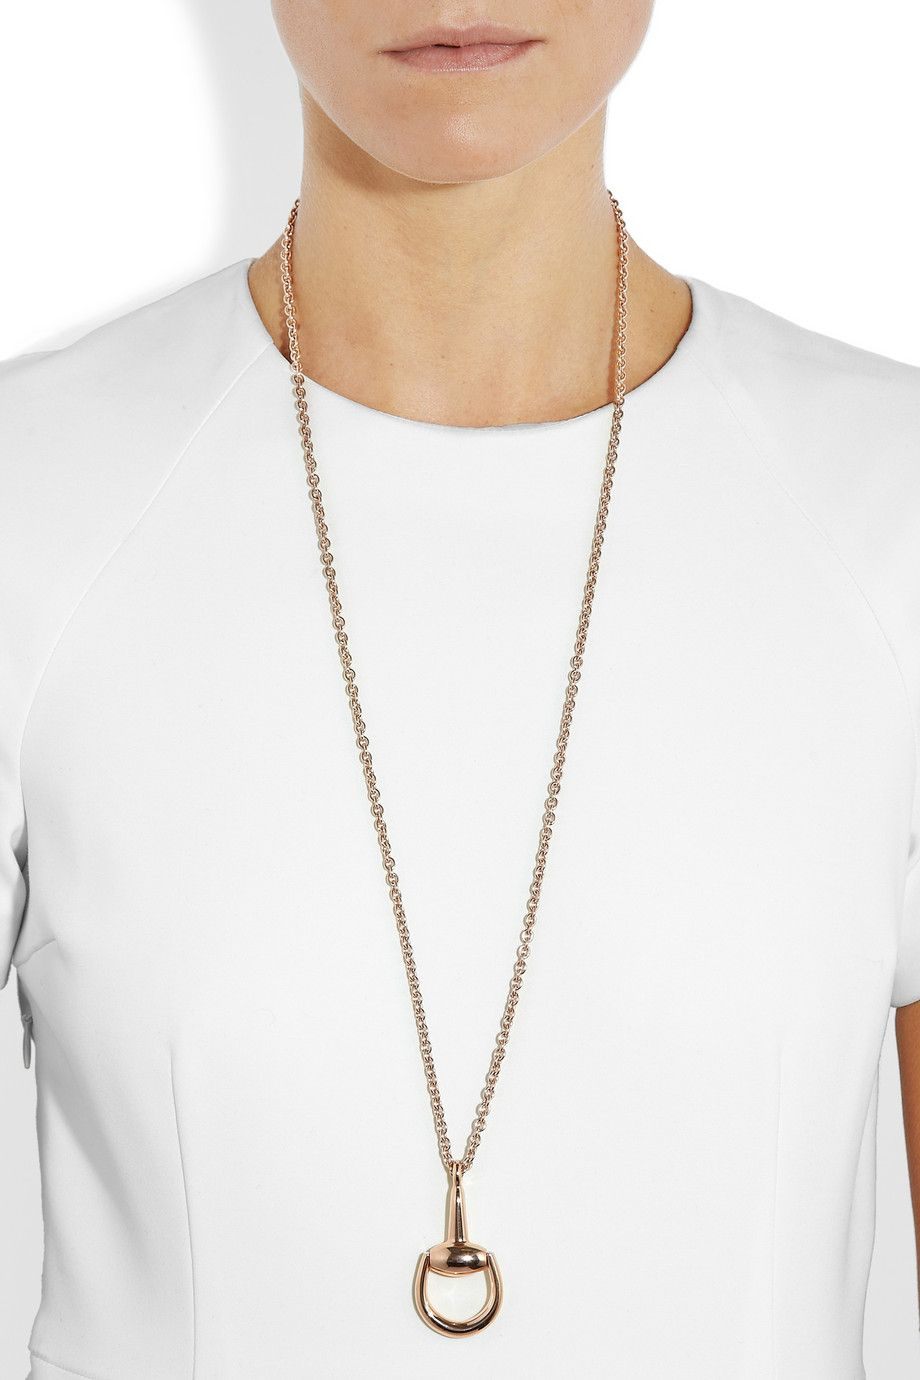 GUCCI 18K Rose Gold Horsebit Necklace Since the 50s the Gucci